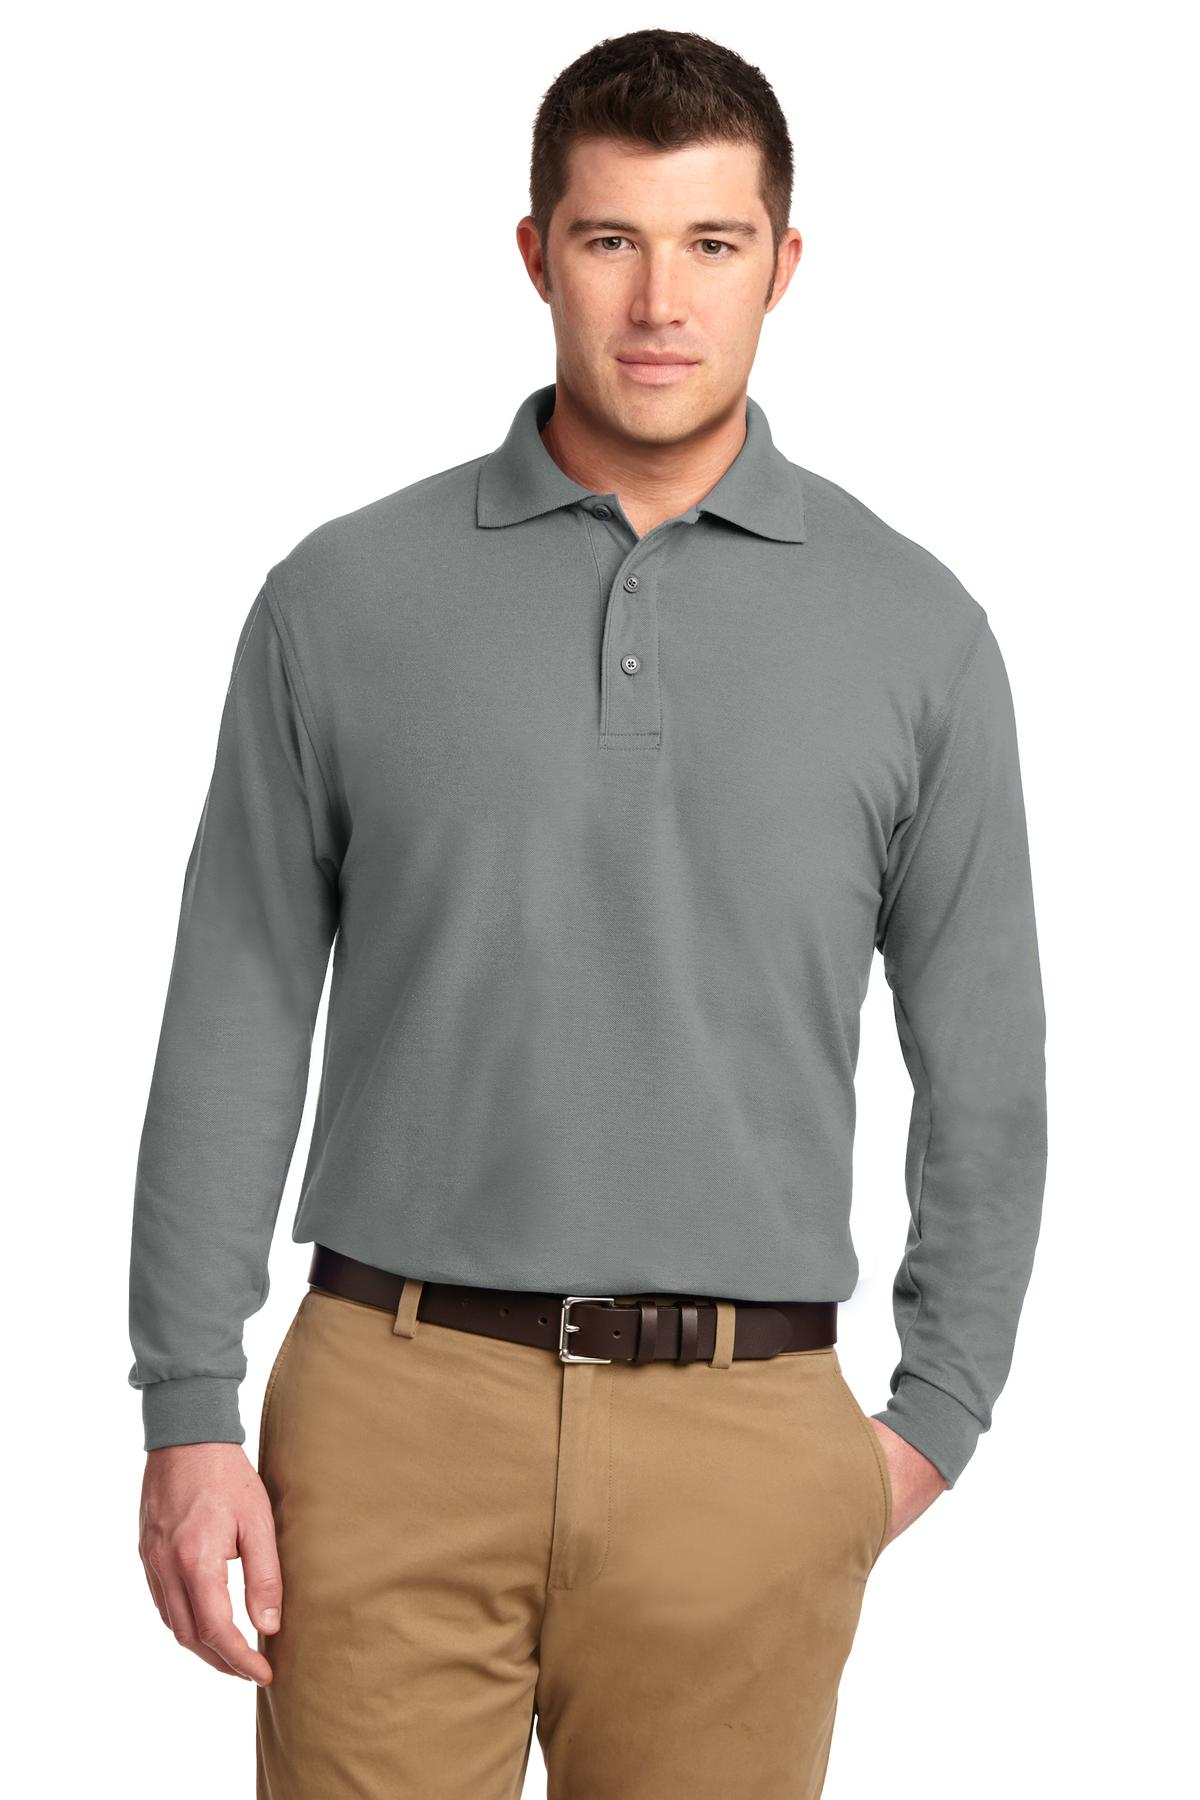 Port Authority ®  Silk Touch™ Long Sleeve Polo.  K500LS - Cool Grey